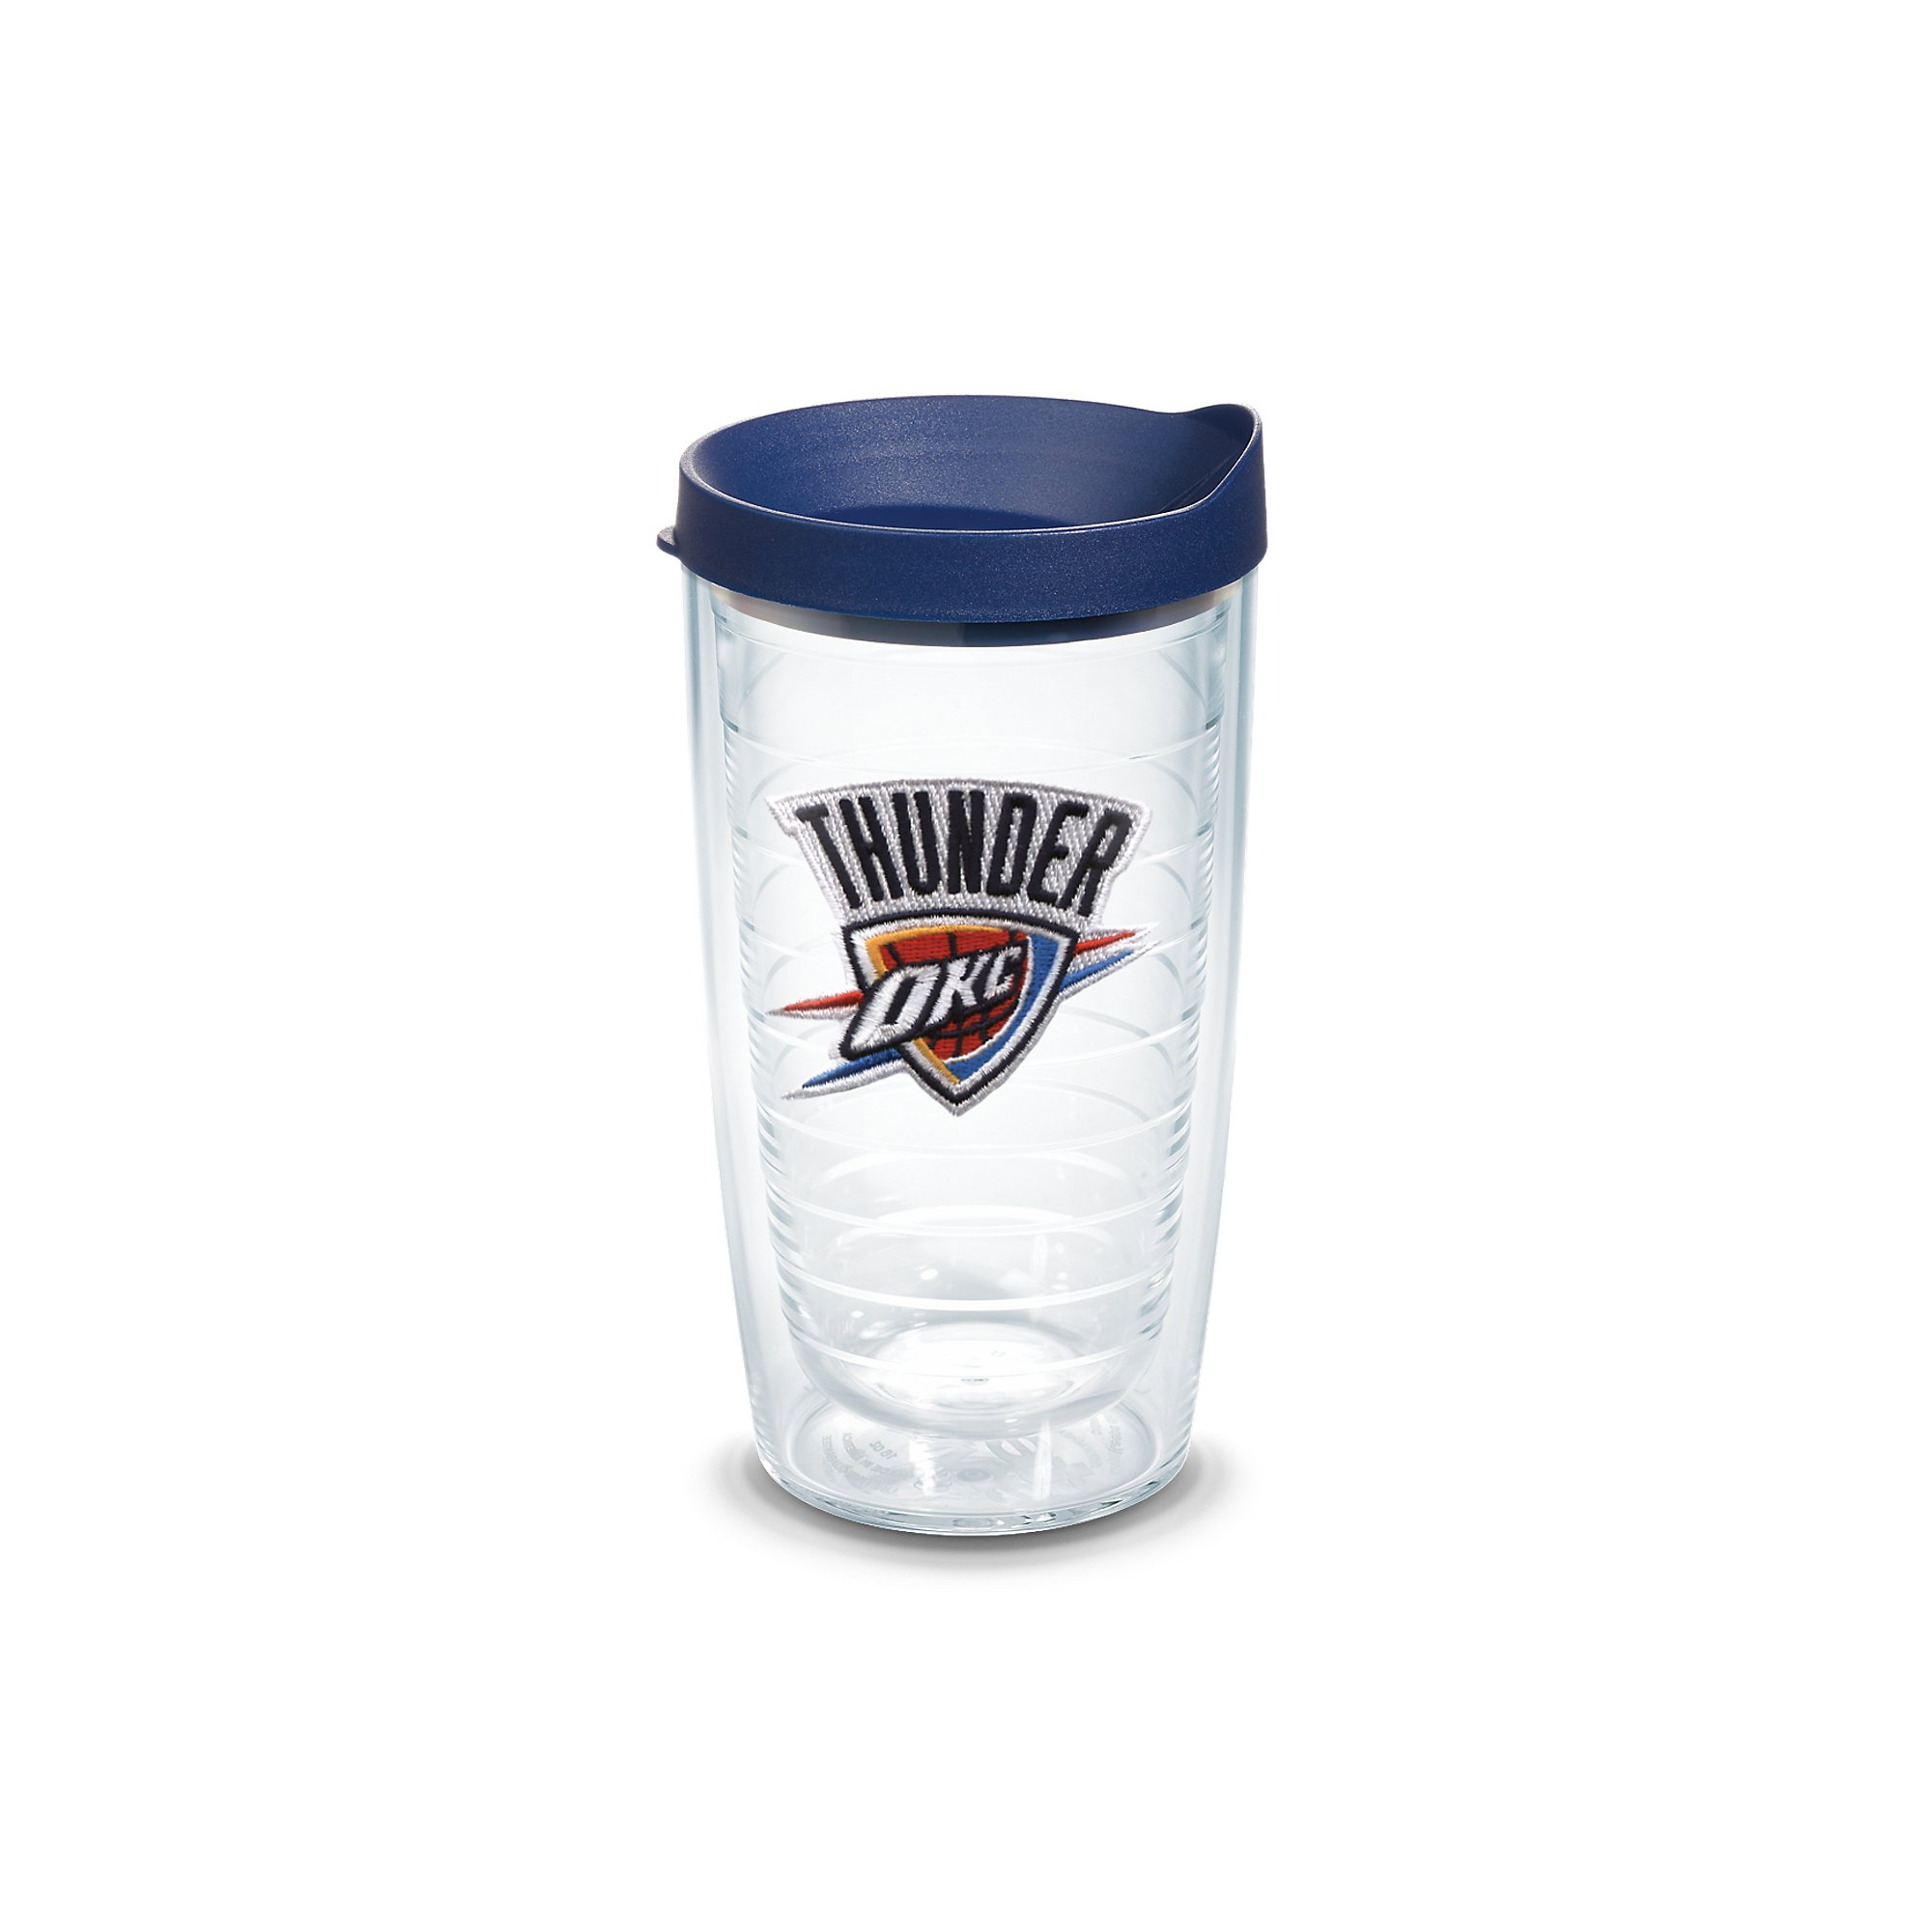 Tervis 1051603 NBA Oklahoma City Thunder Primary Logo Tumbler with Emblem and Navy Lid 16oz, Clear